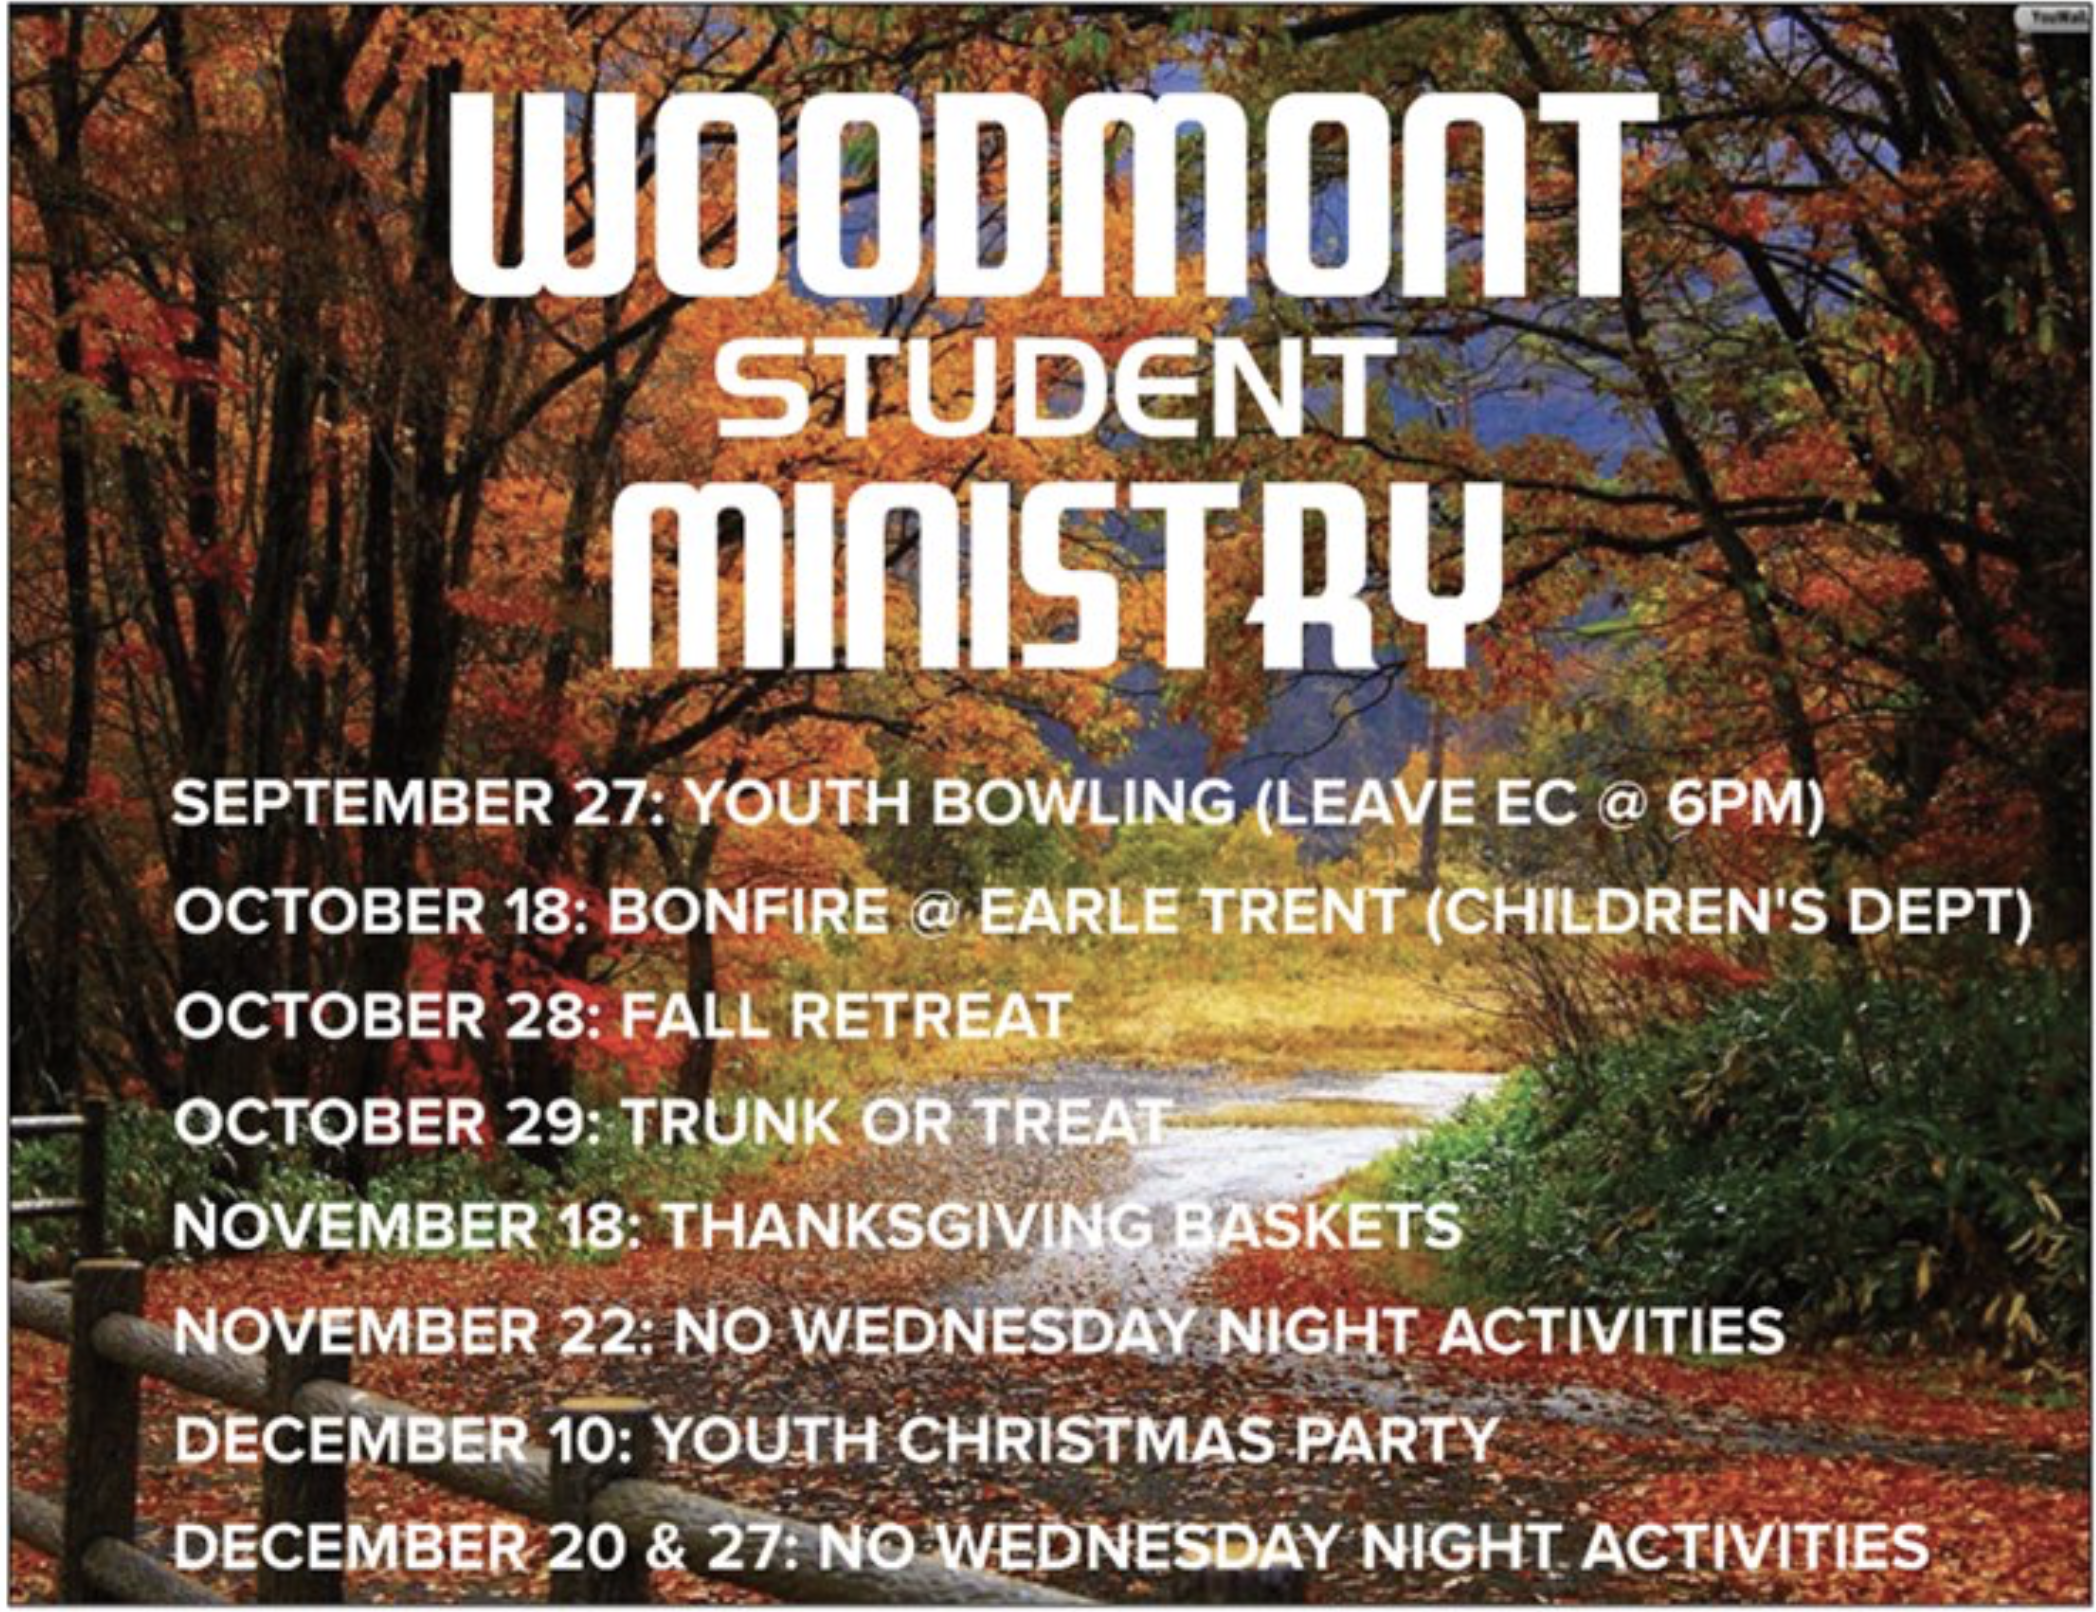 Youth, students, events, Woodmont, Baptist, Church